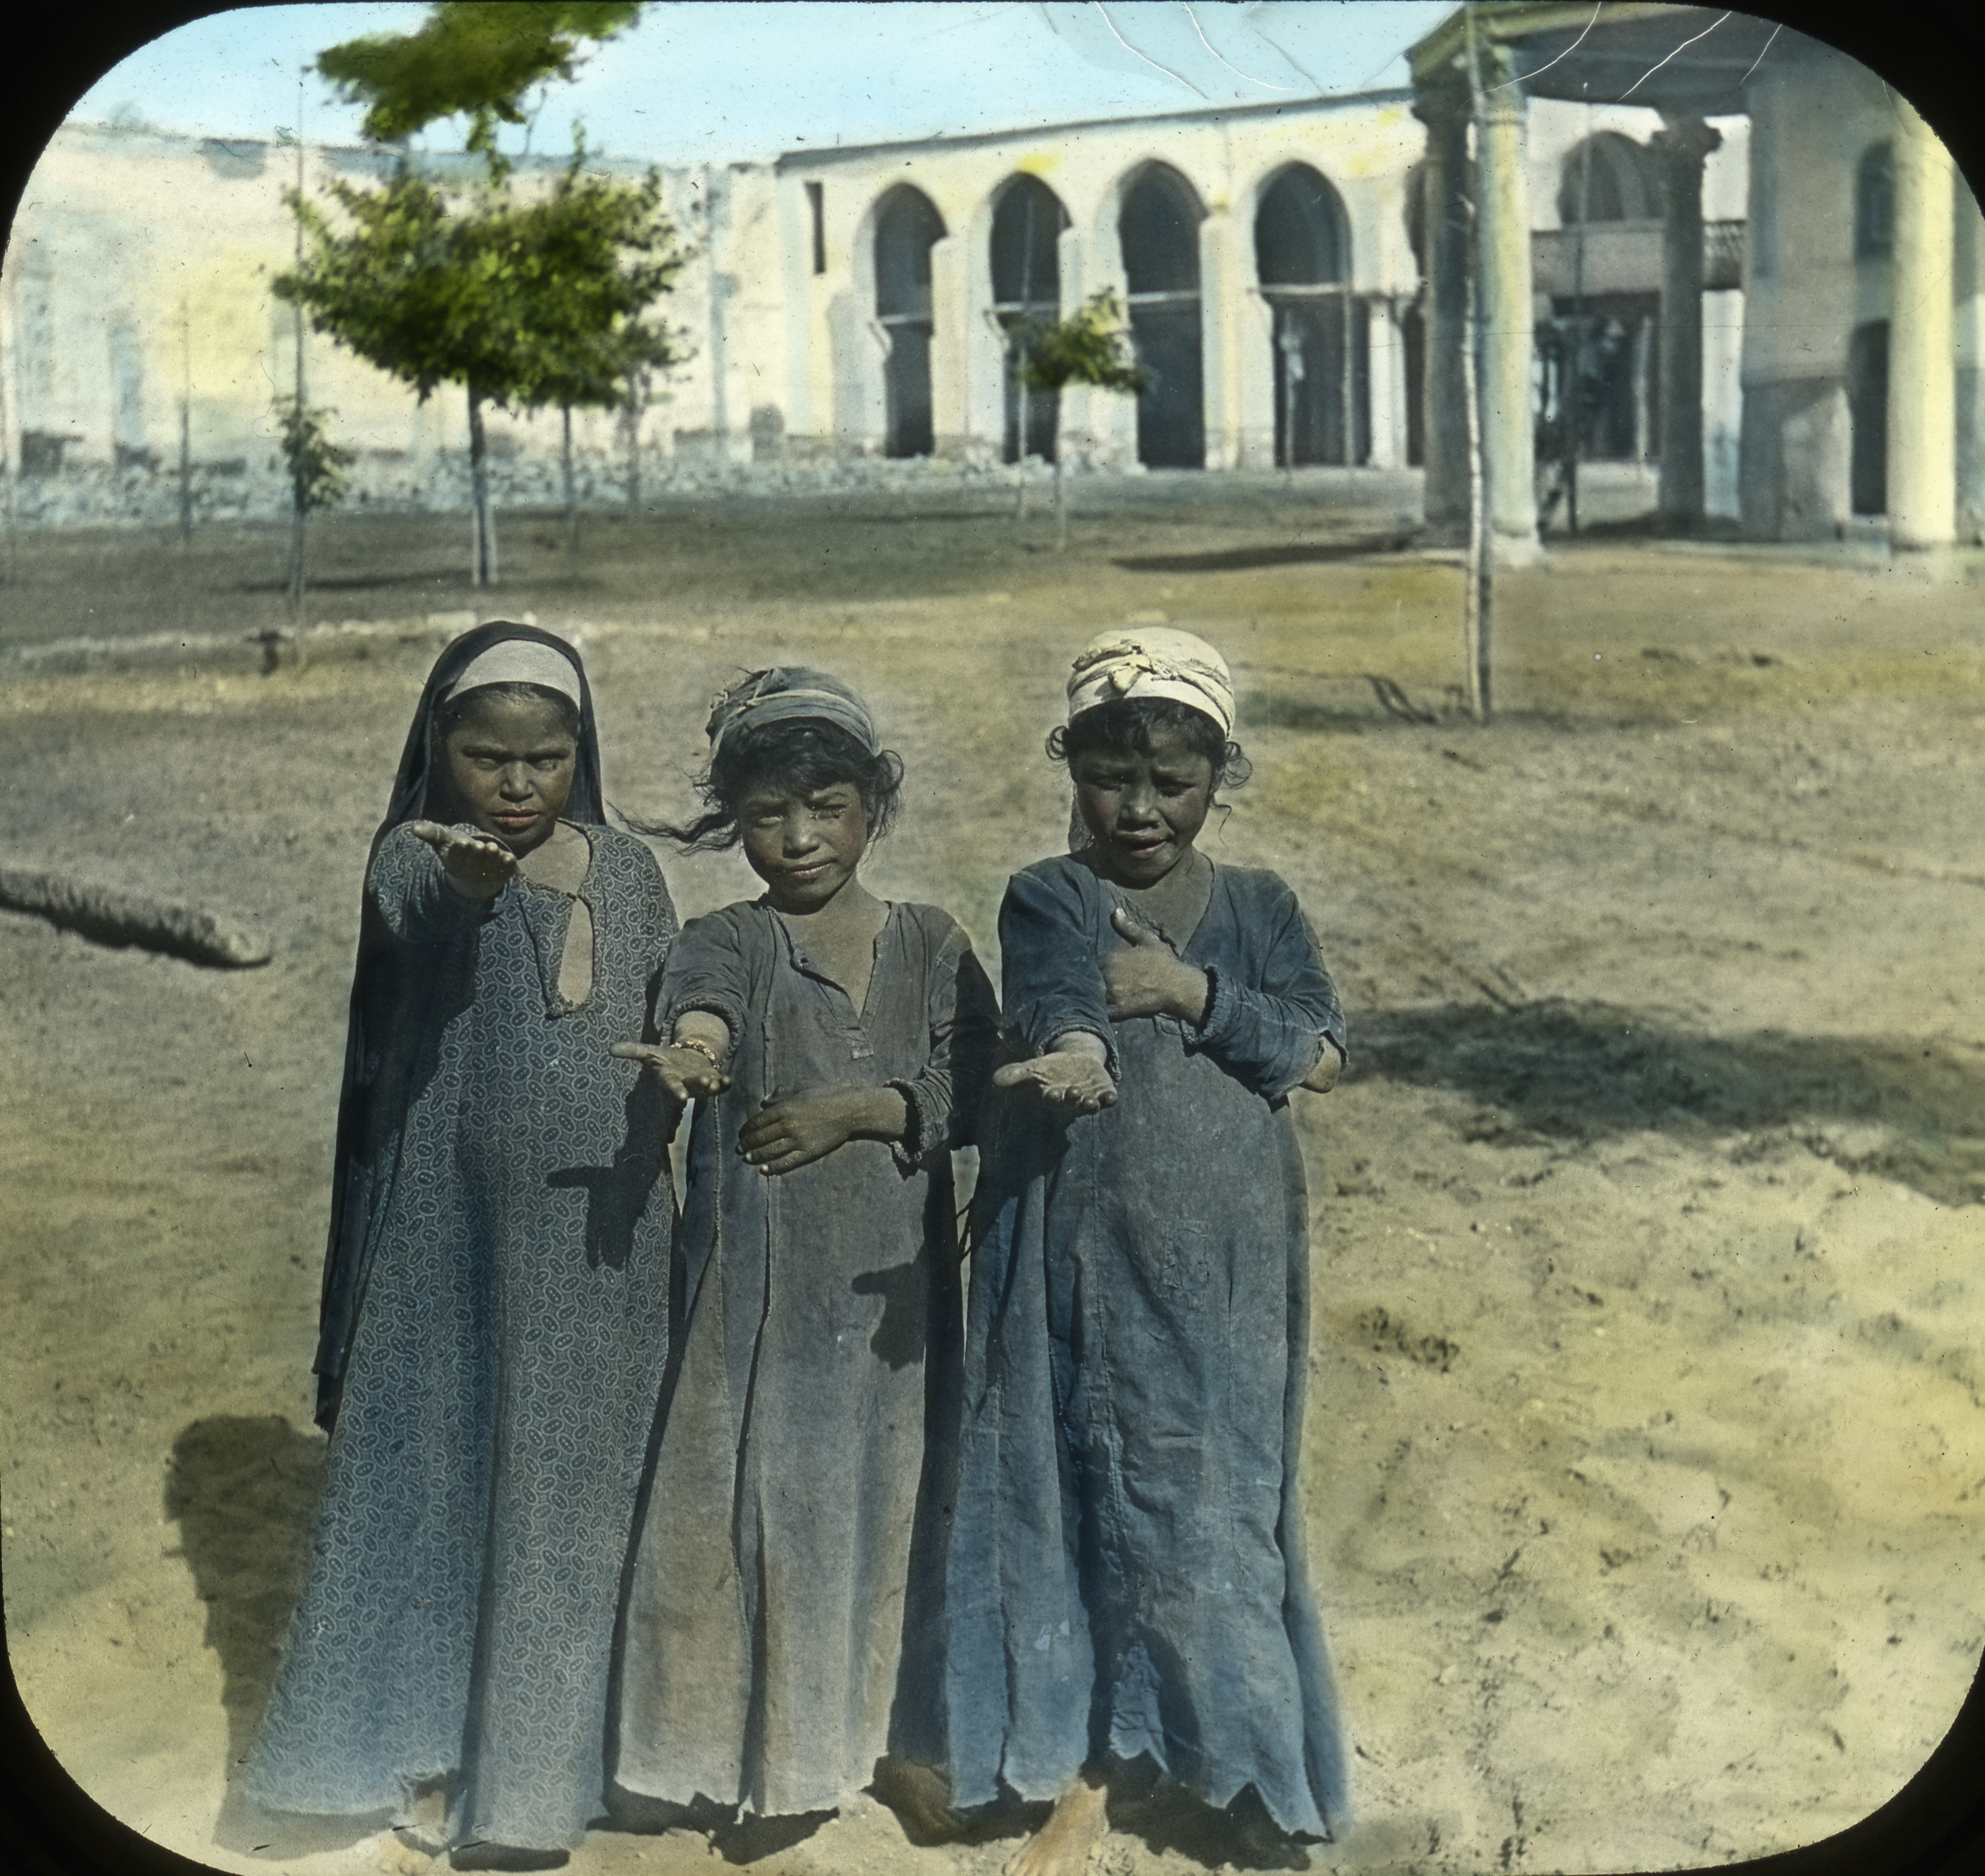 Egypt - Egyptian Girls (I have no doubt in my mind that this photograph with all its insinuations was staged---Editor)